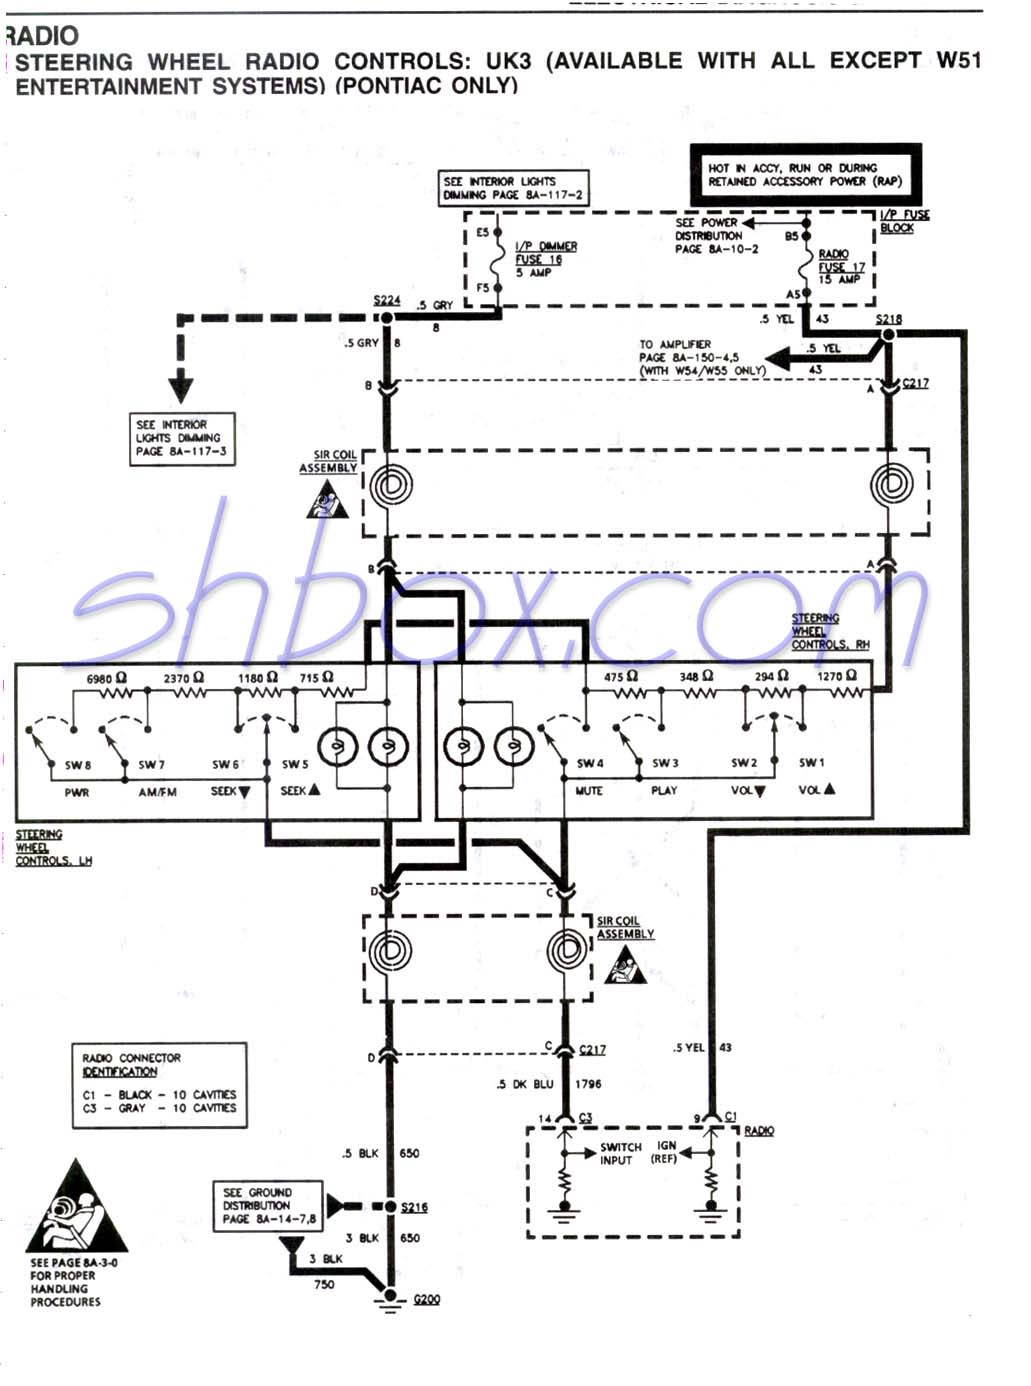 st_radio_controls 1996 lt1 wiring diagram dolgular com  at crackthecode.co